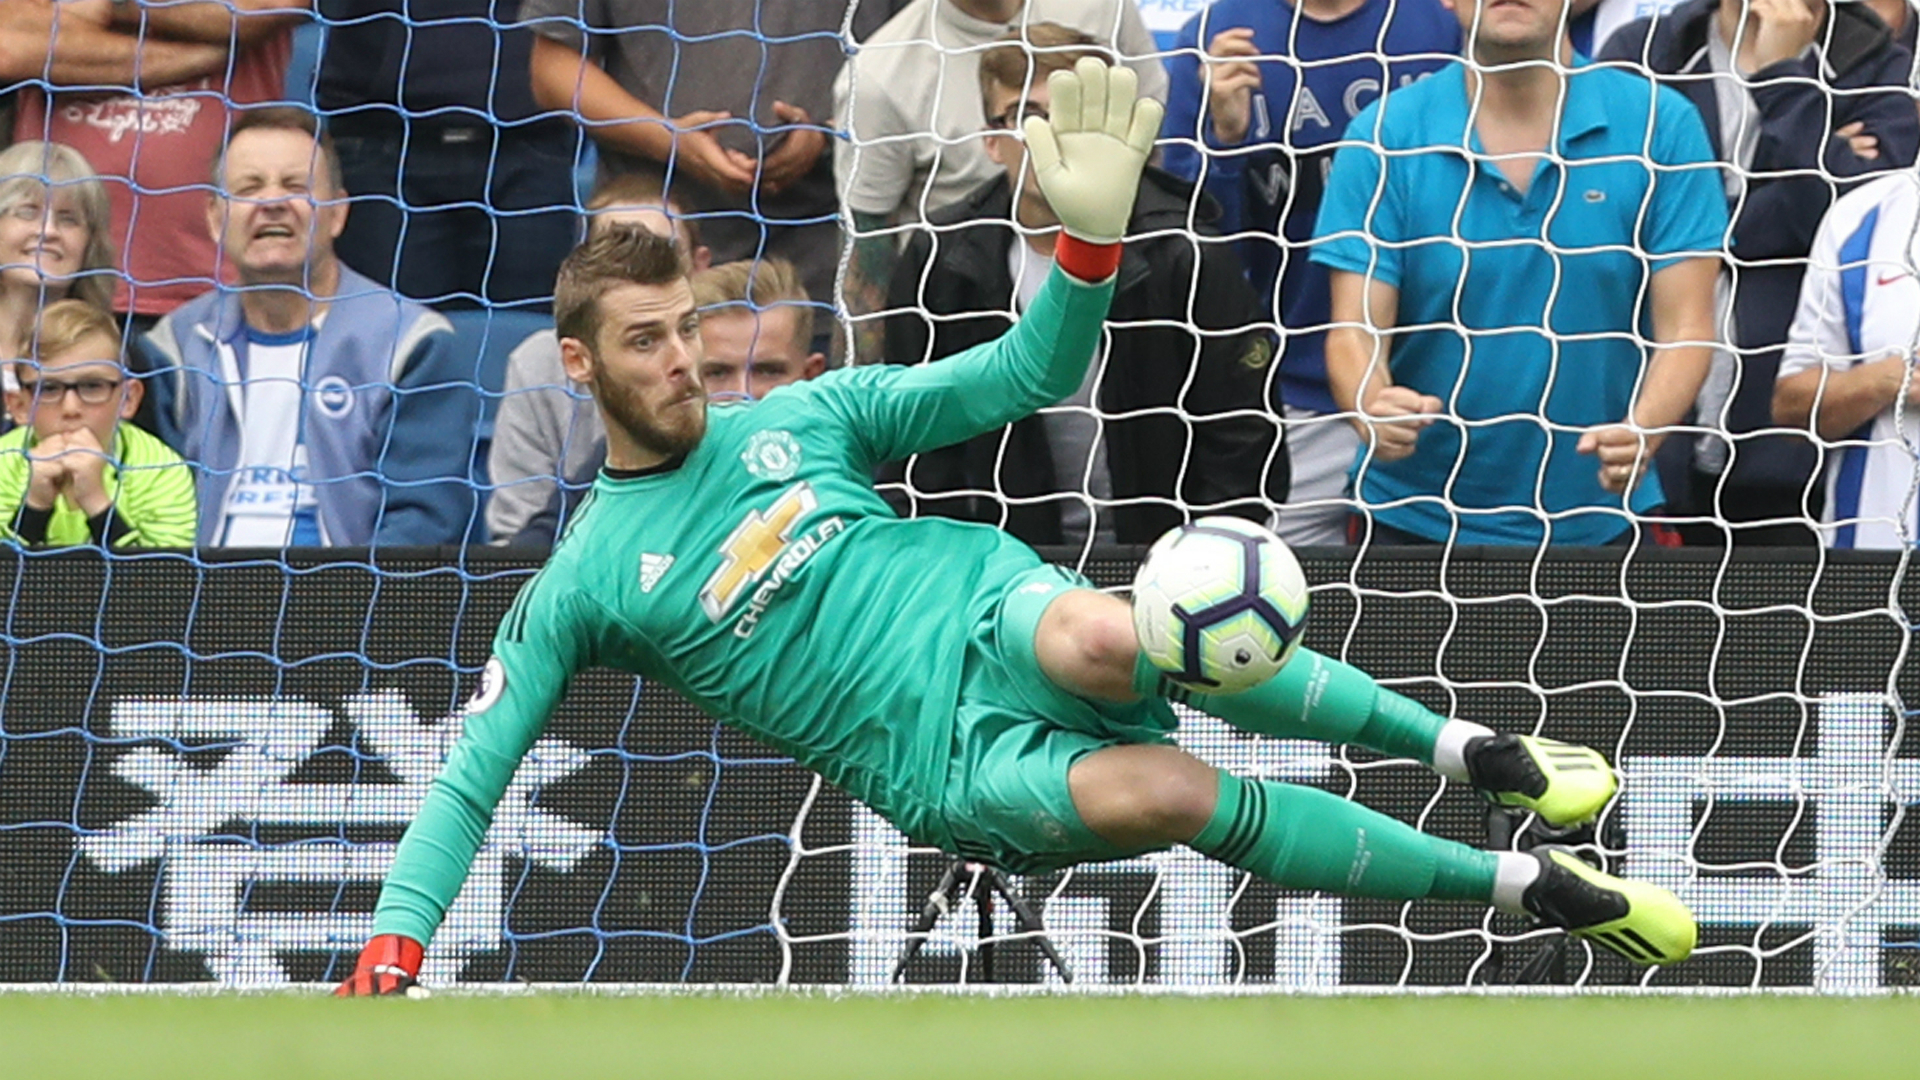 I never listen to stupid things - De Gea unconcerned by criticism